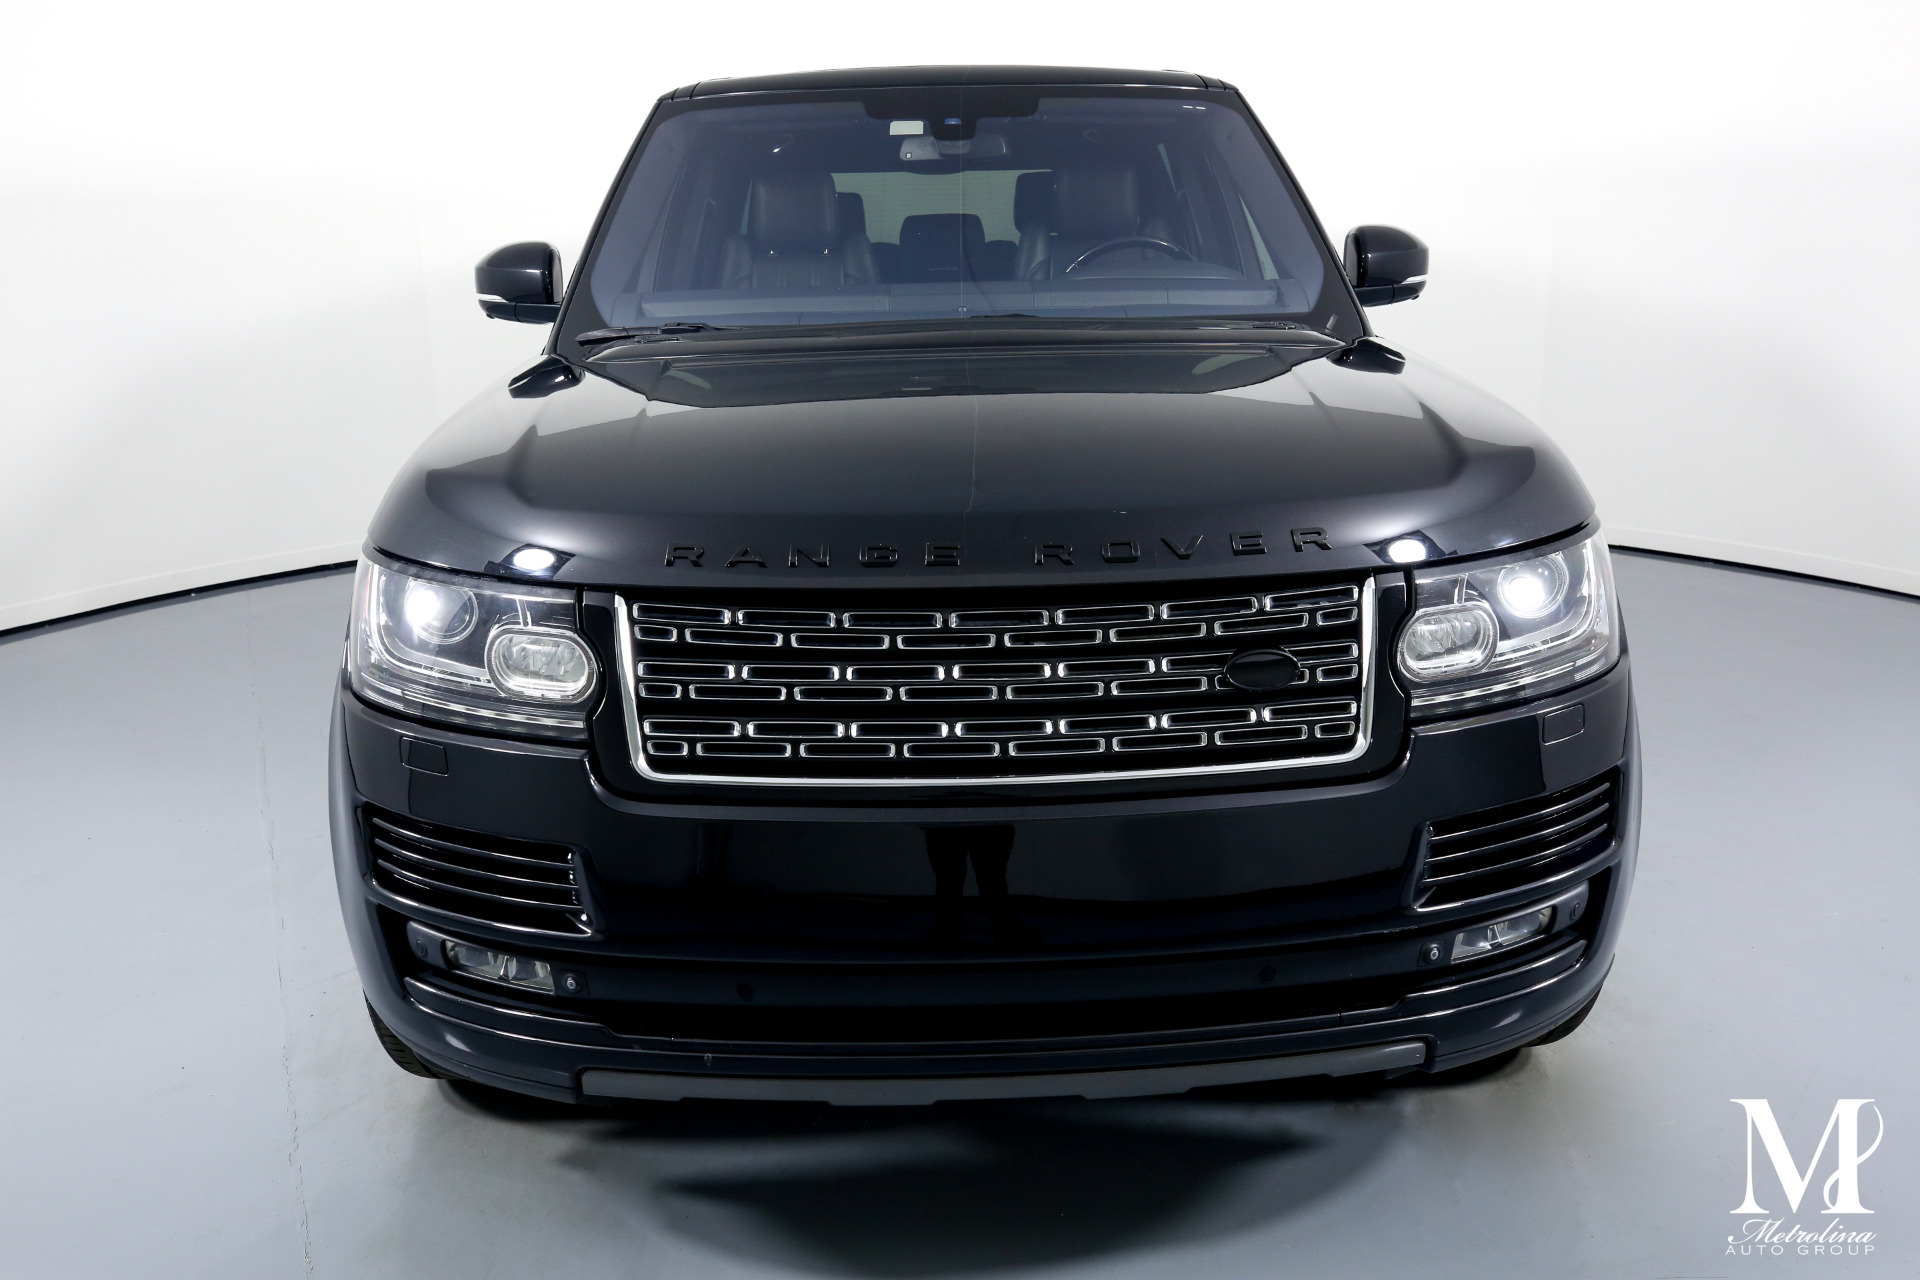 Used 2015 Land Rover Range Rover Supercharged LWB for sale $59,996 at Metrolina Auto Group in Charlotte NC 28217 - 3